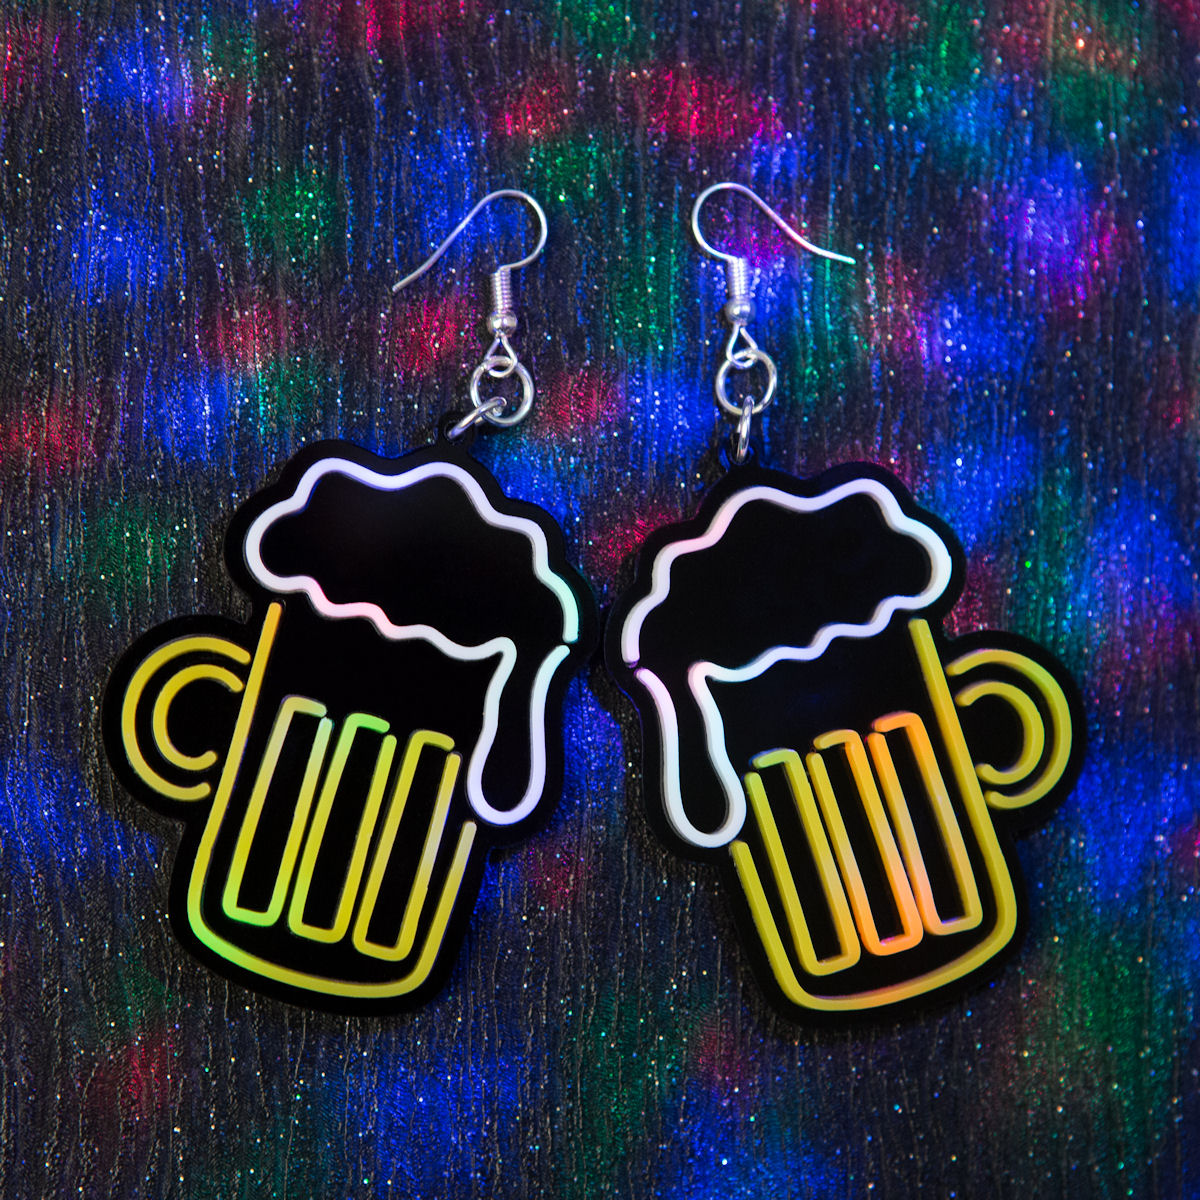 Sugar & Vice Neon Beer Earrings social media